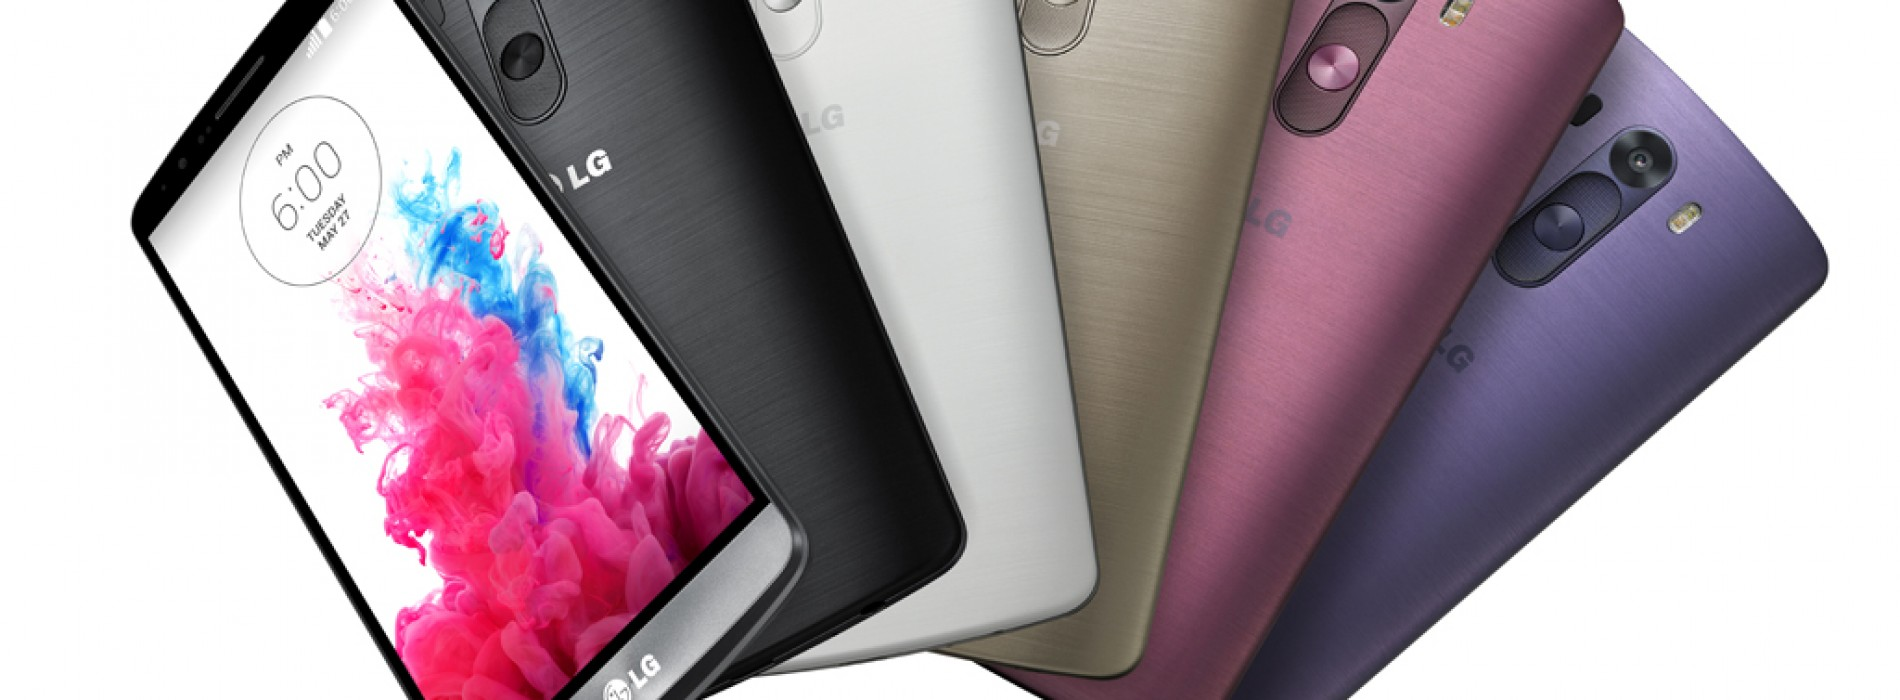 LG G3 is now available from Sprint and AT&T